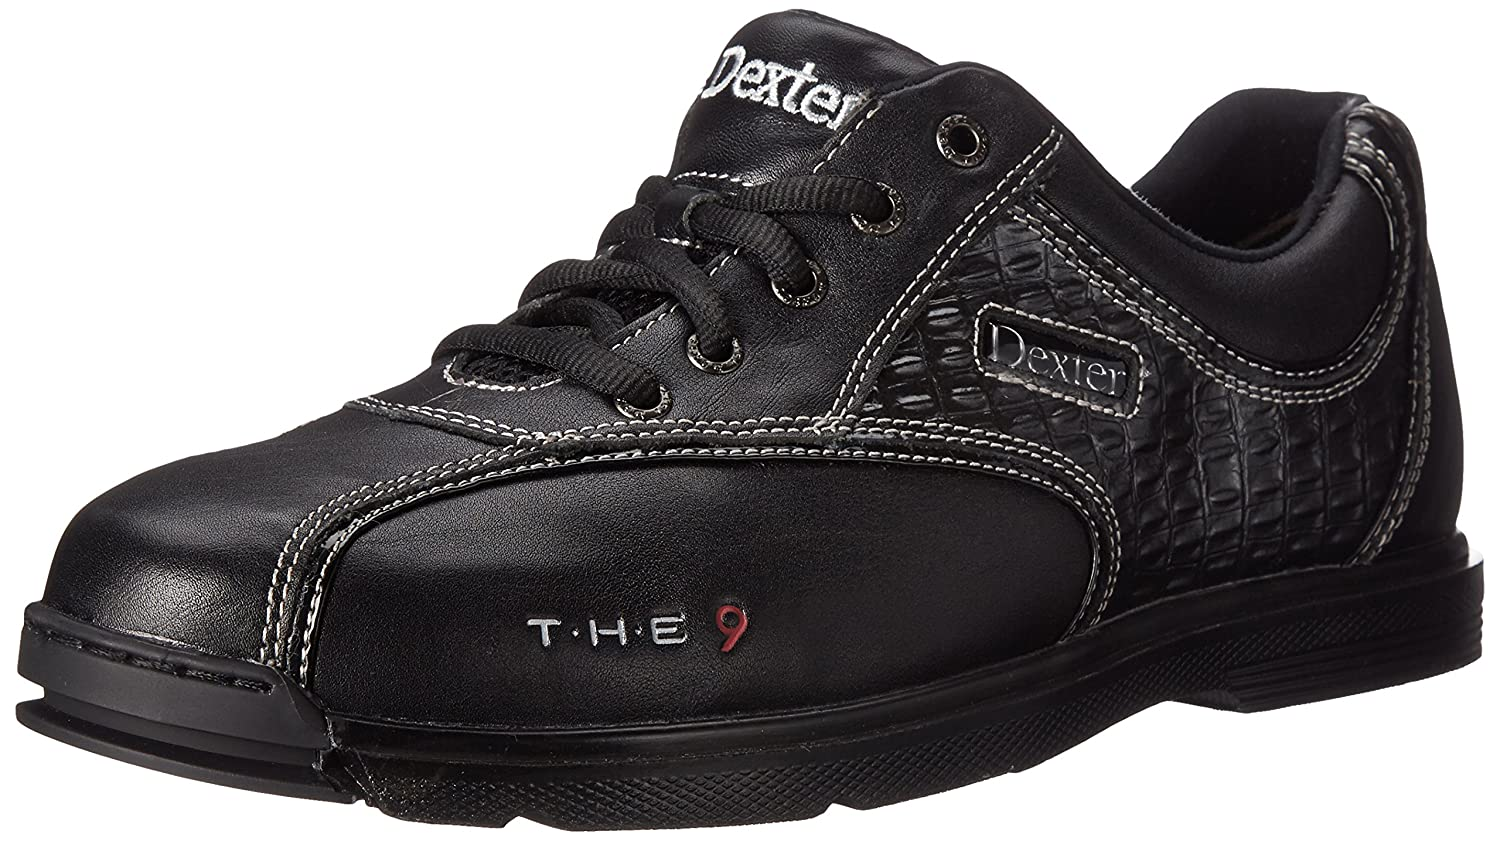 Dexter THE 9 Bowling Shoes Black